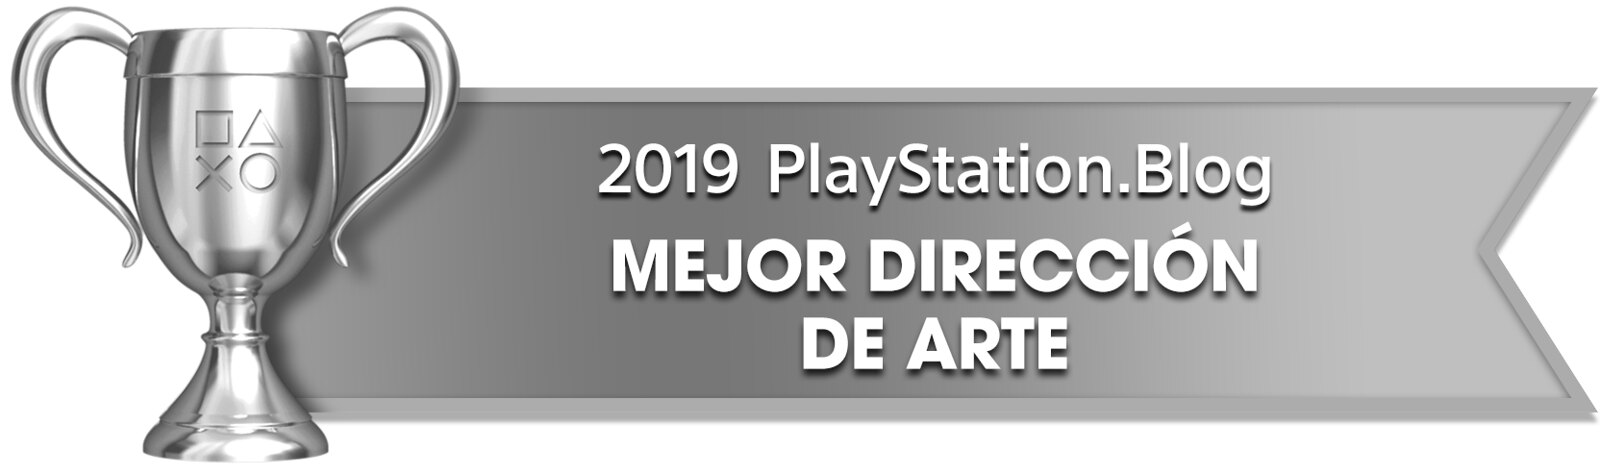 PS Blog Game of the Year 2019 - Best Art Direction - 3 - Silver